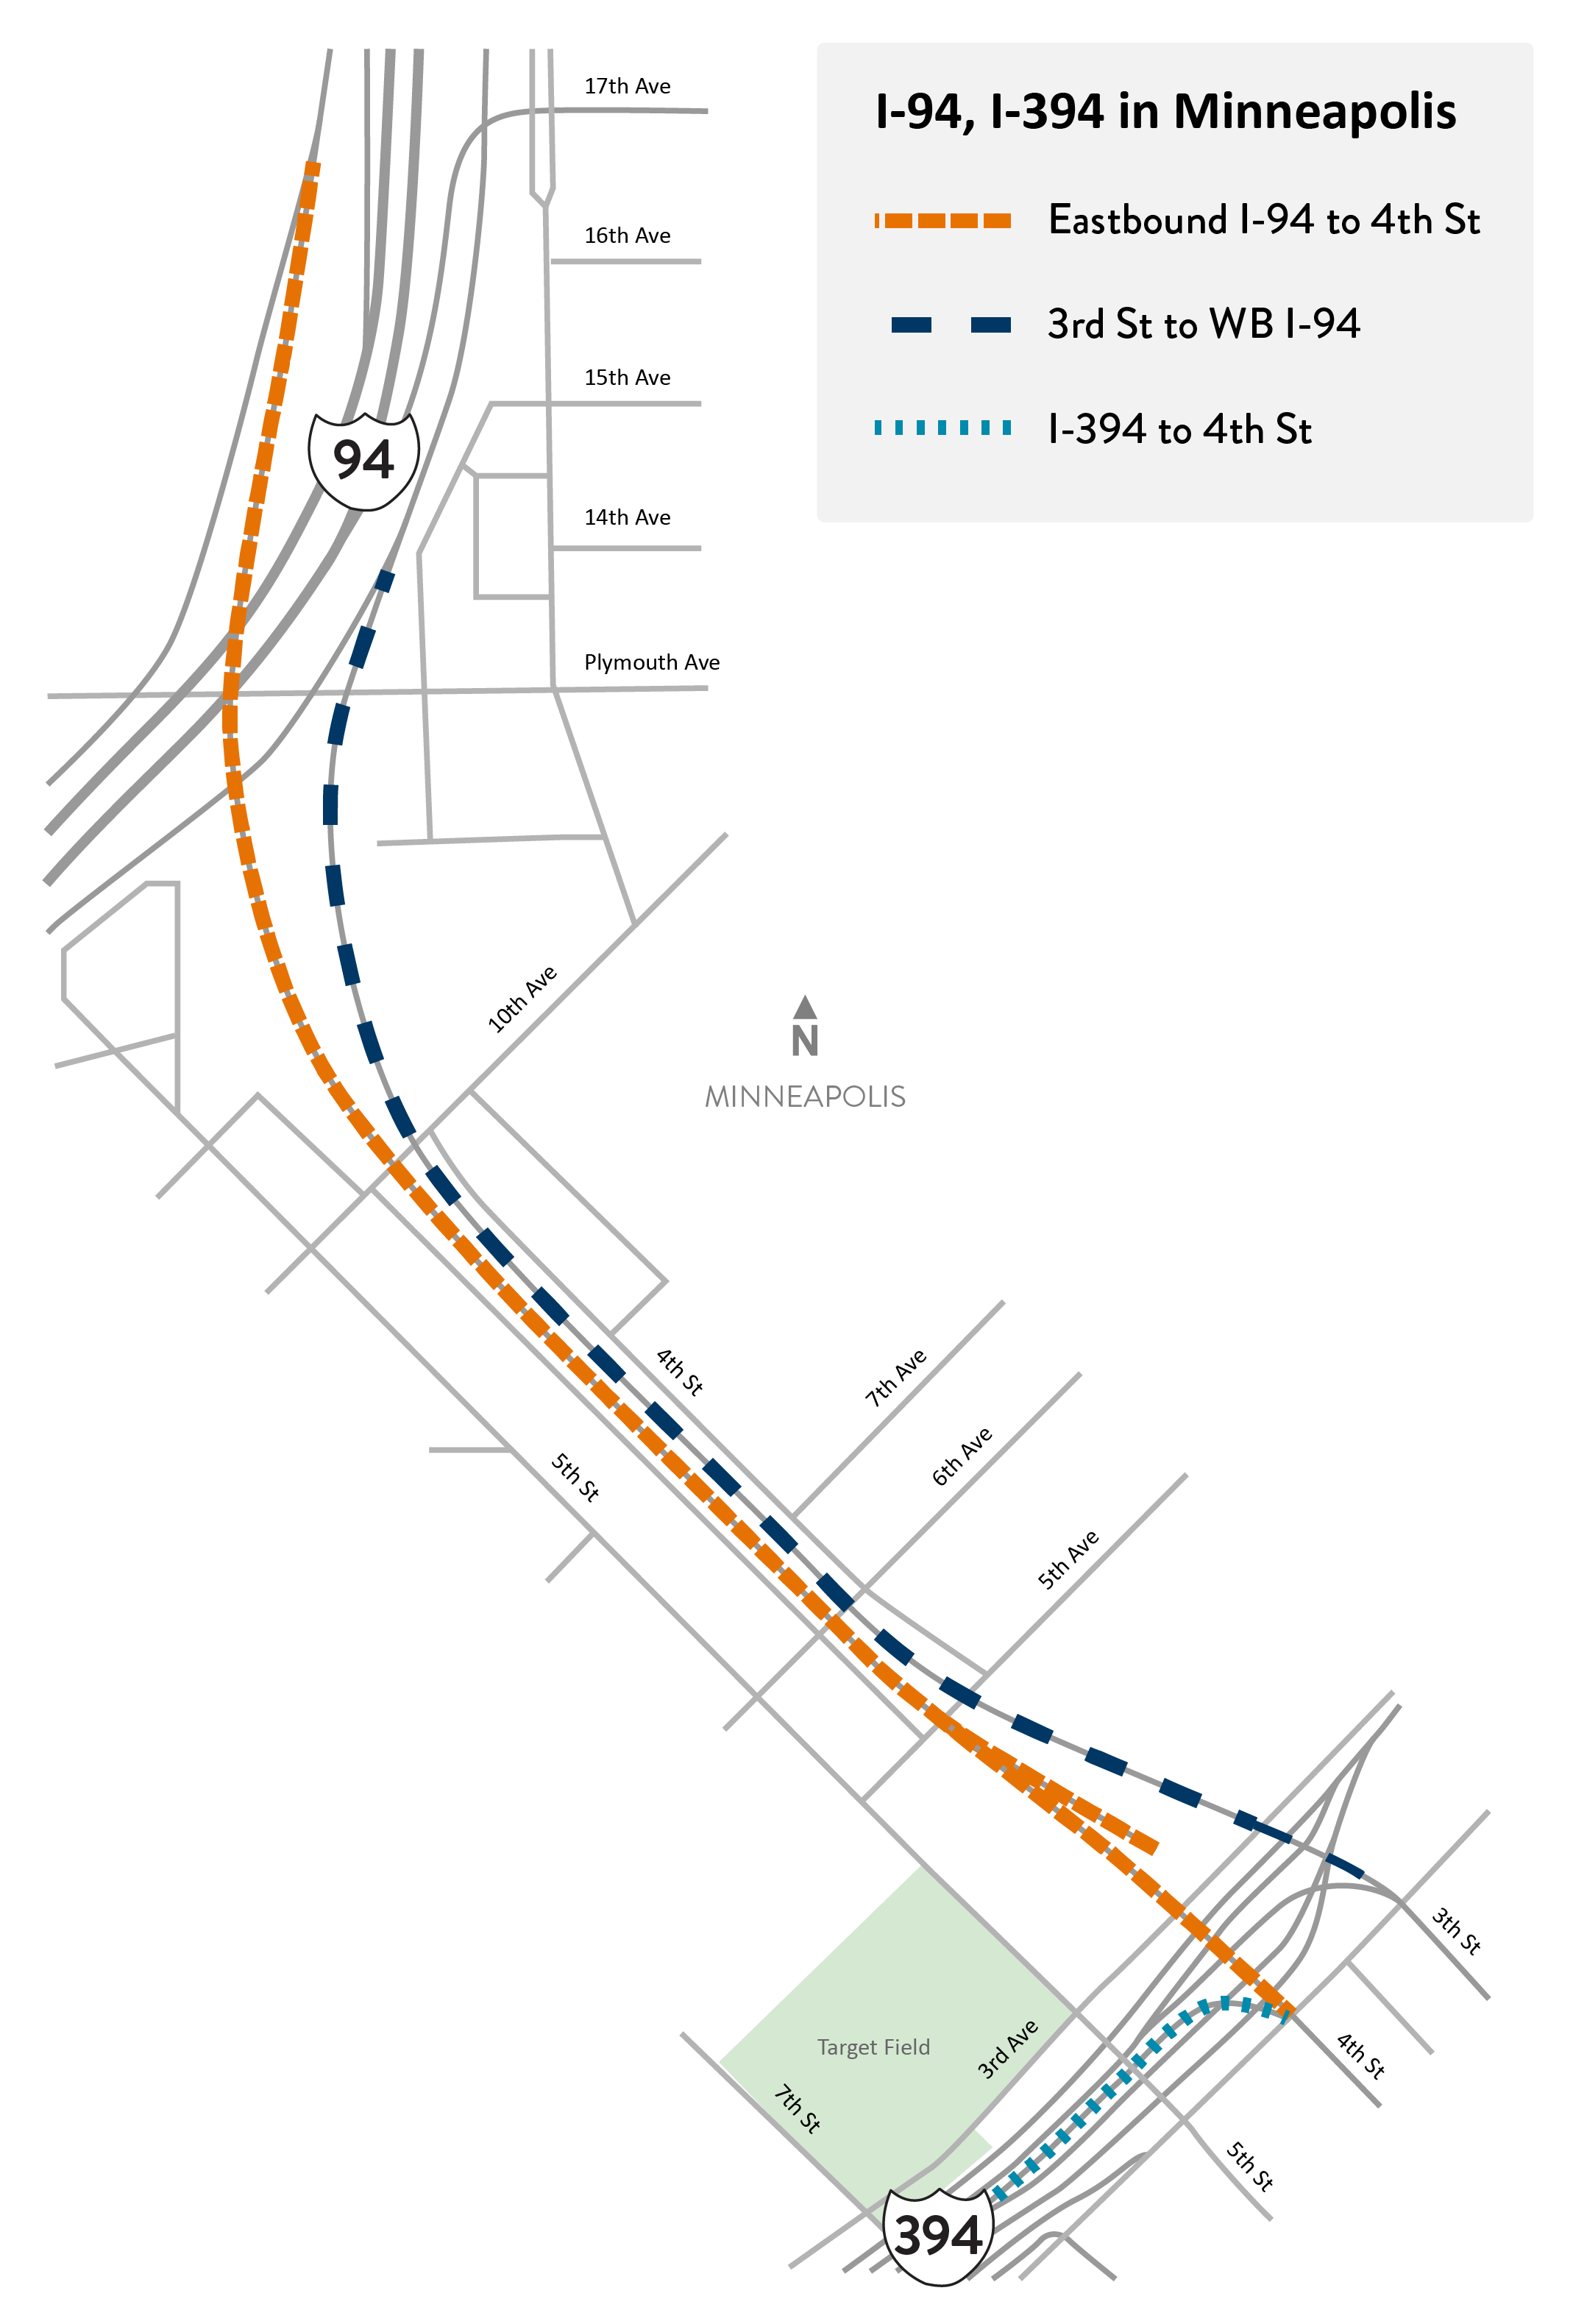 I-94 and I-394 in Minneapolis project location map